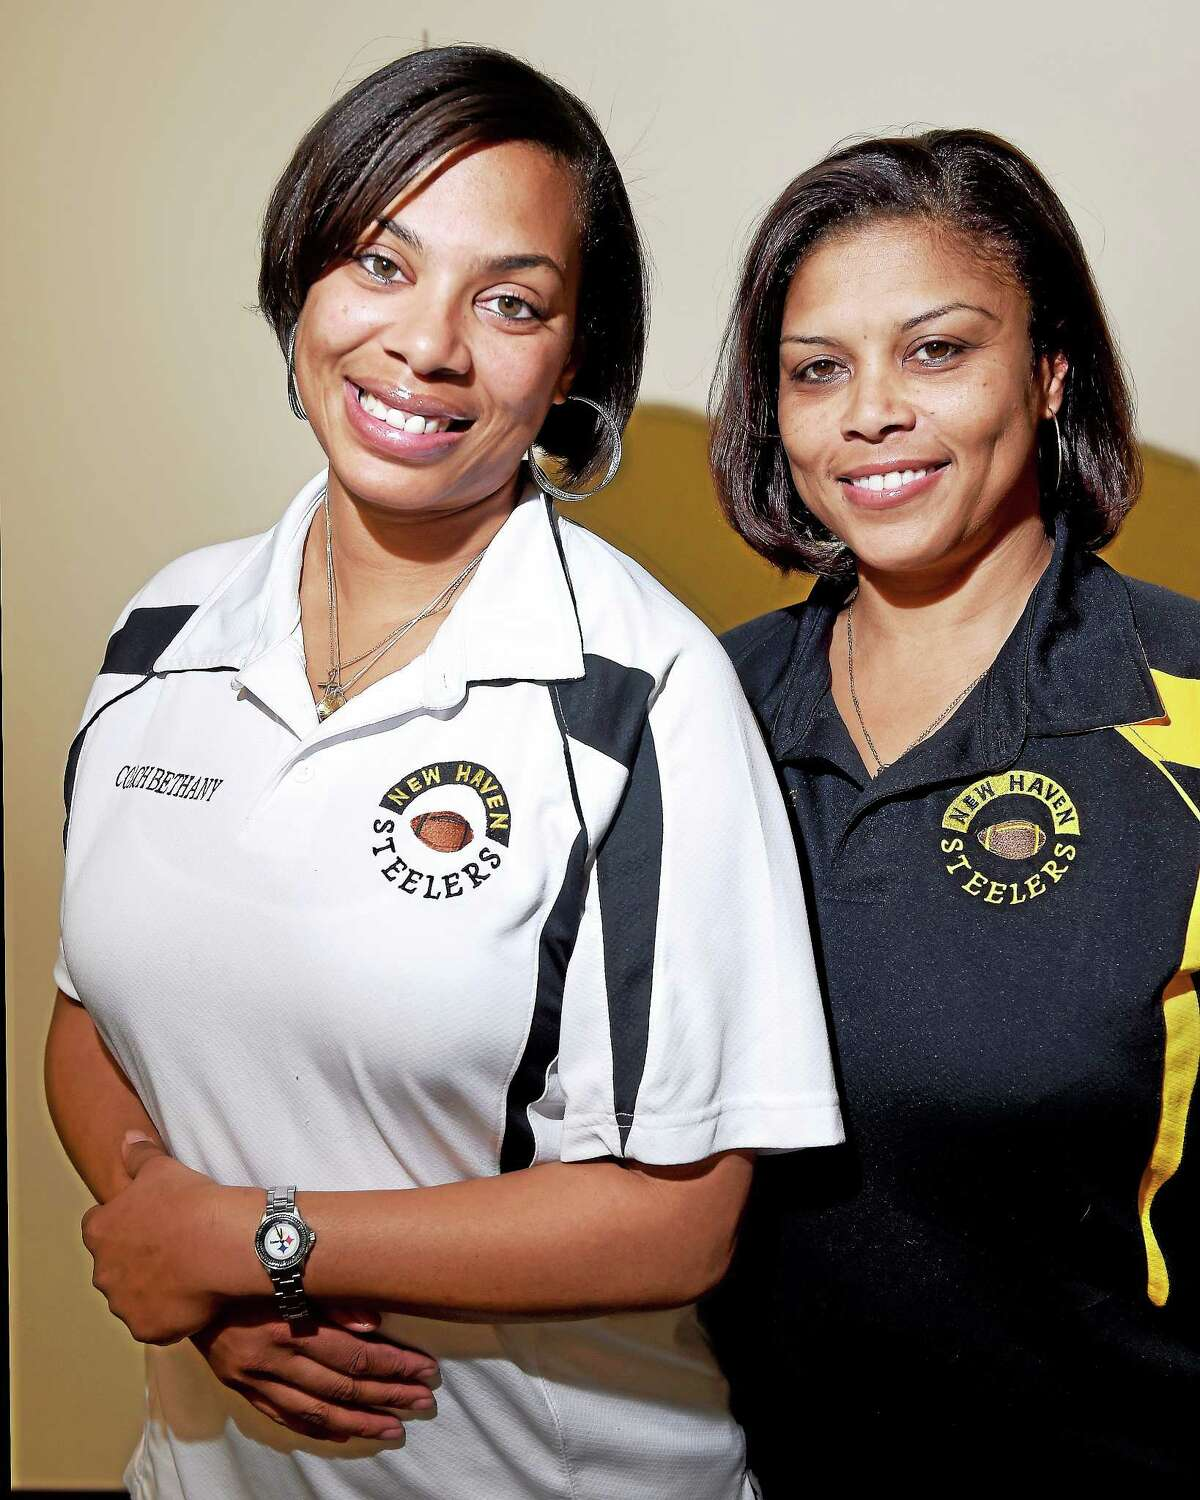 New Haven Steelers Pee Wee assistant coach Bethany S. Watkins (left) and team mom, Vera Esdaile, are photographed on 12/1/2014.